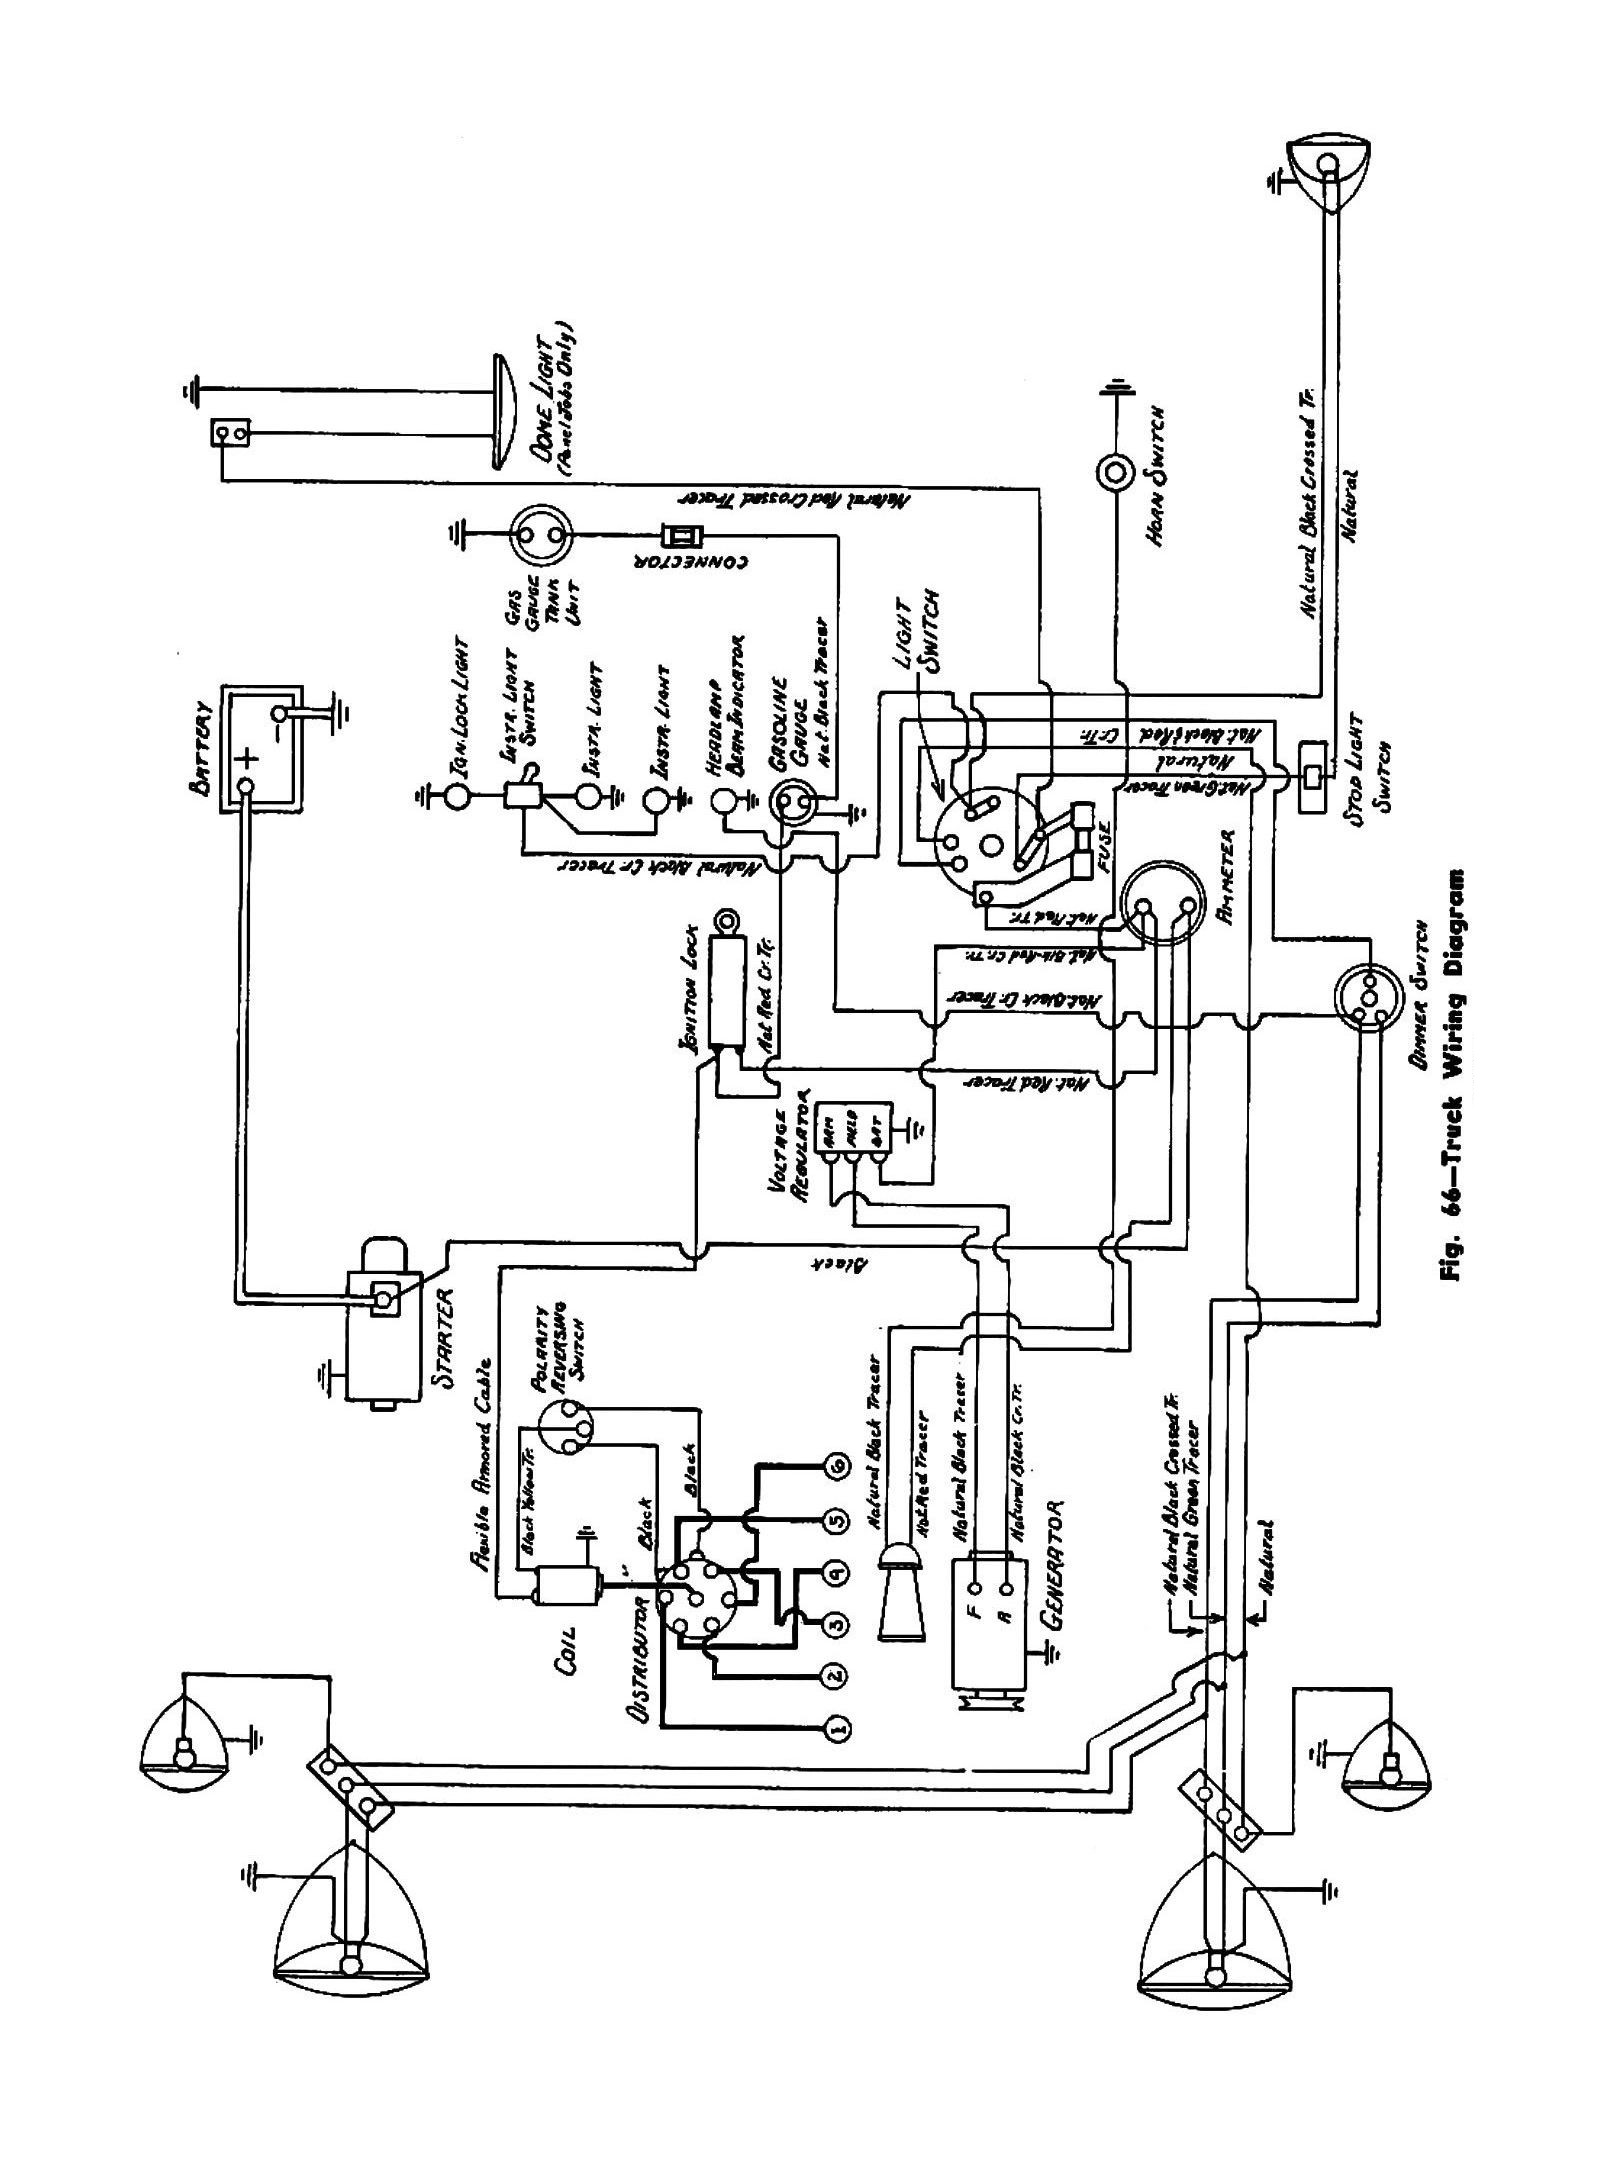 45truck 1968 chevy pickup wiring diagram wiring diagram simonand ford truck wiring harness at soozxer.org